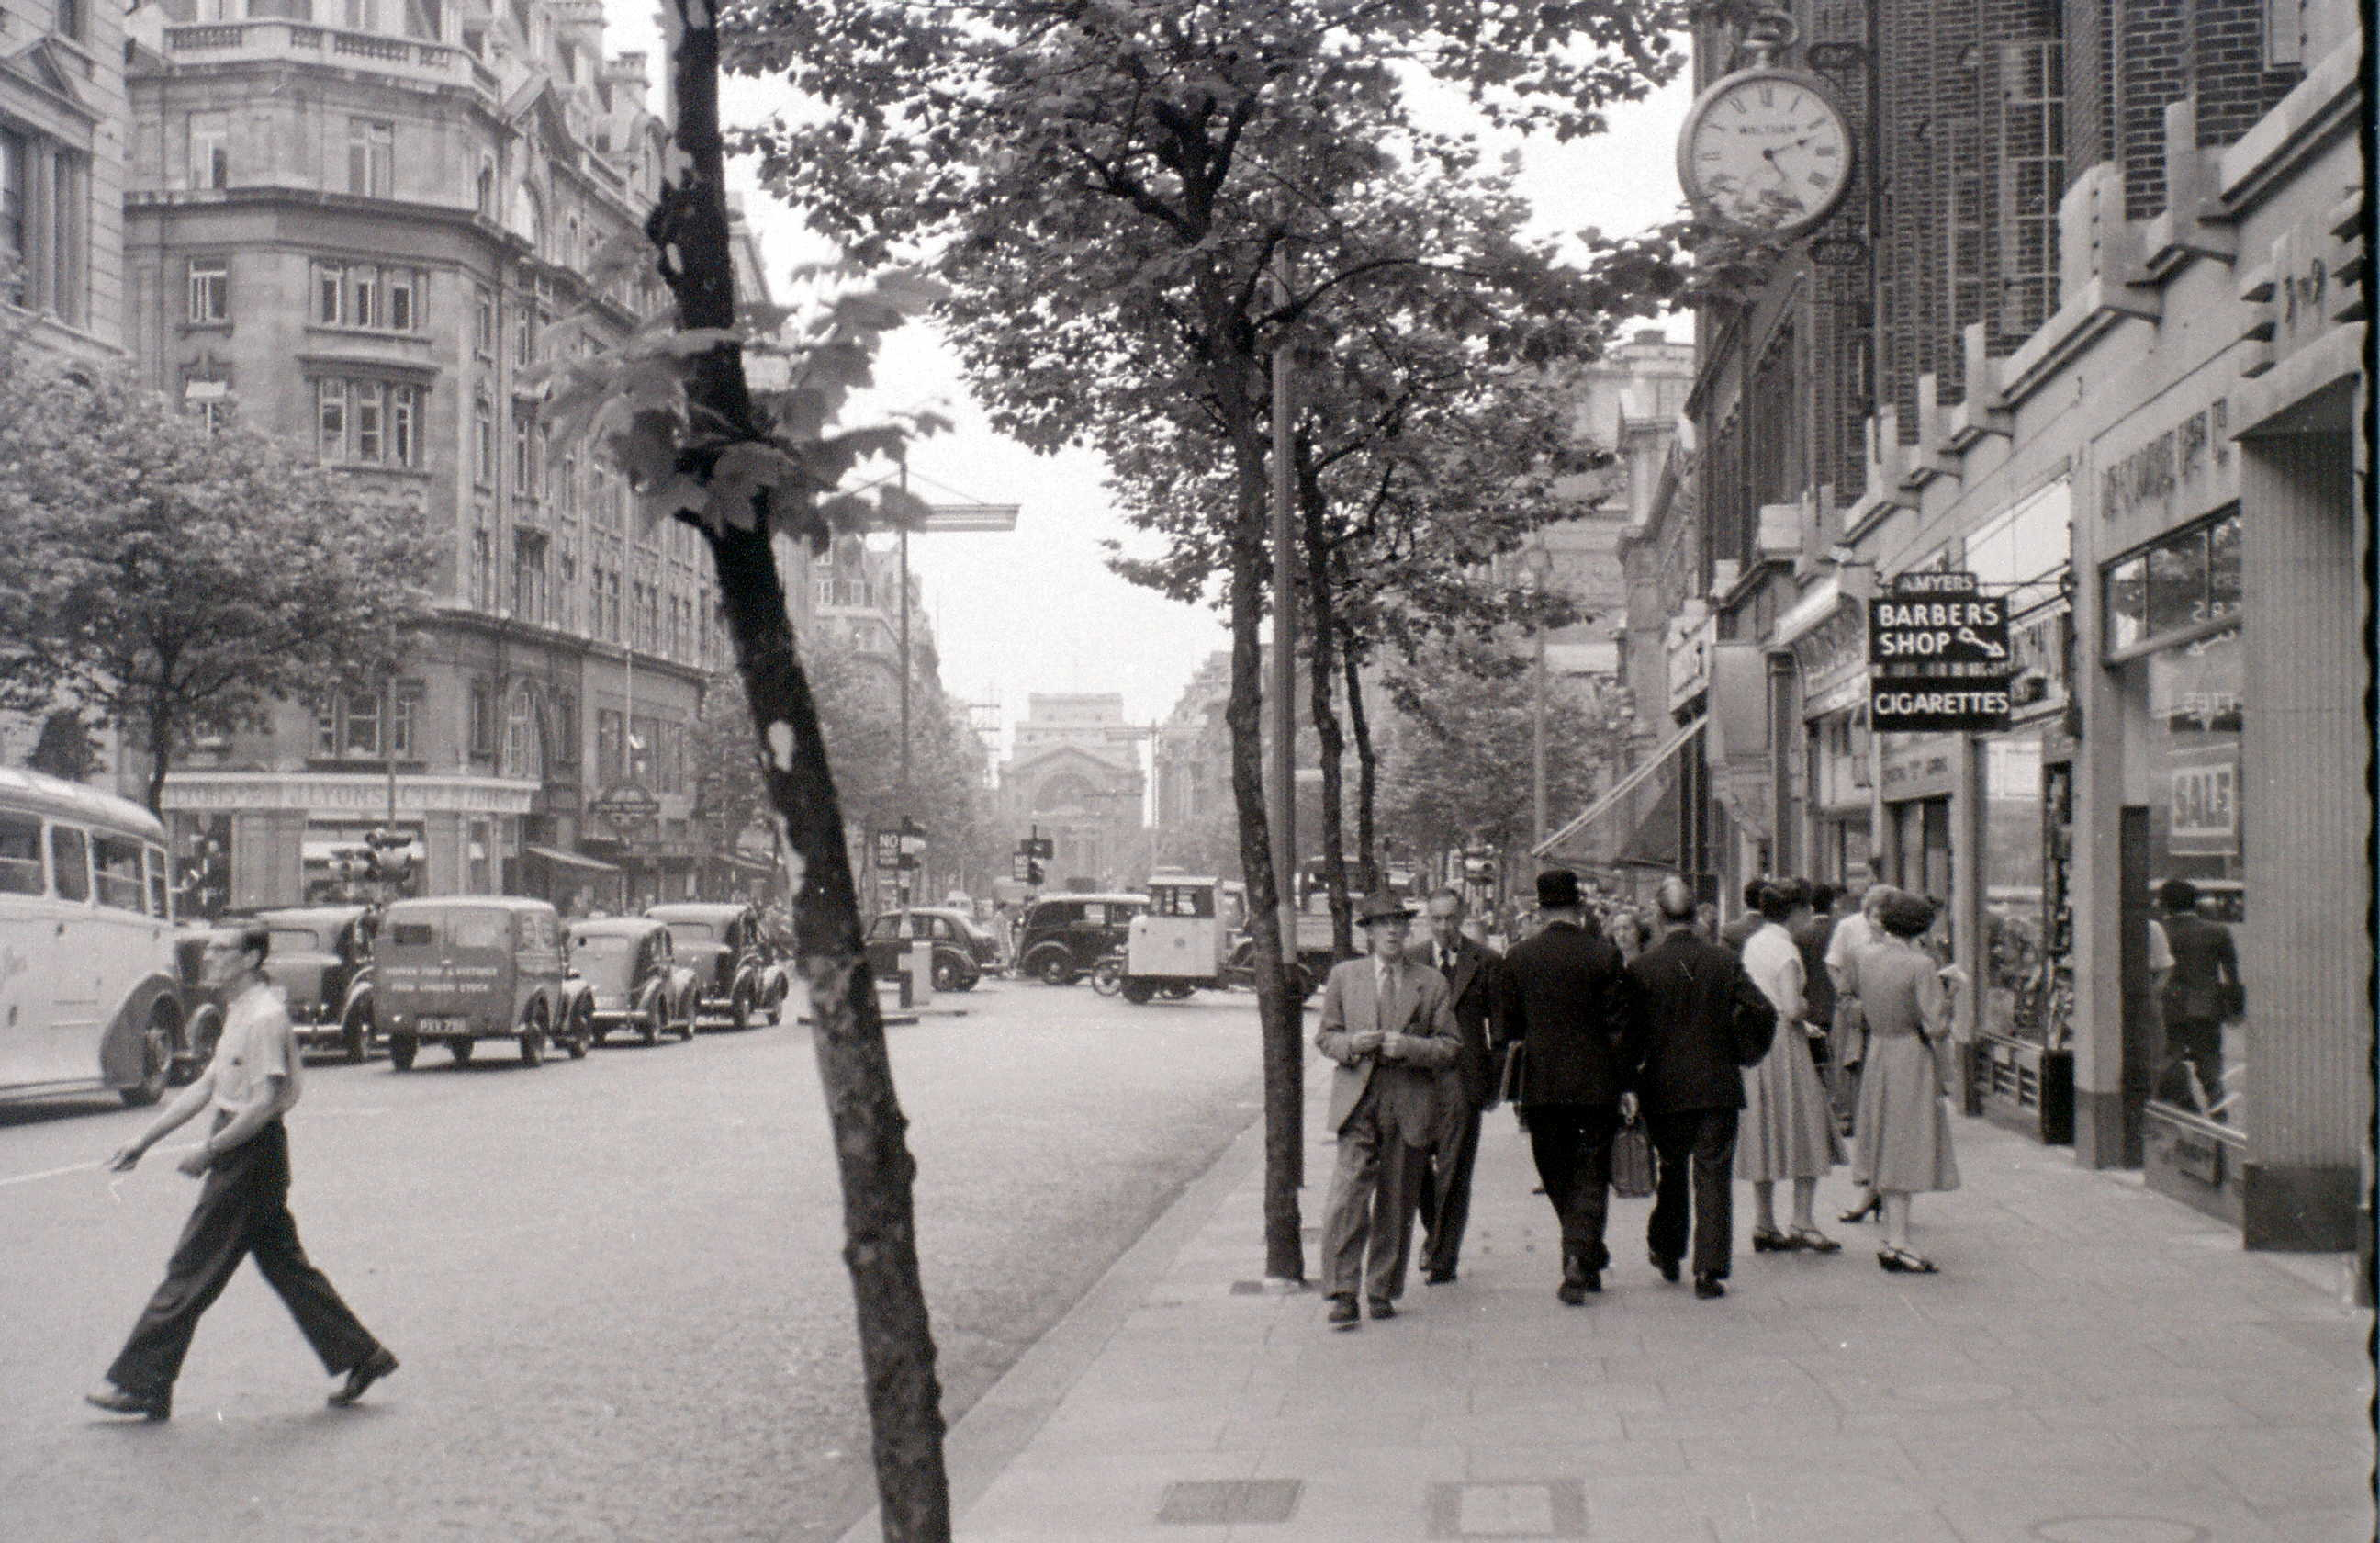 Southampton Row, London, 2 August 1955.